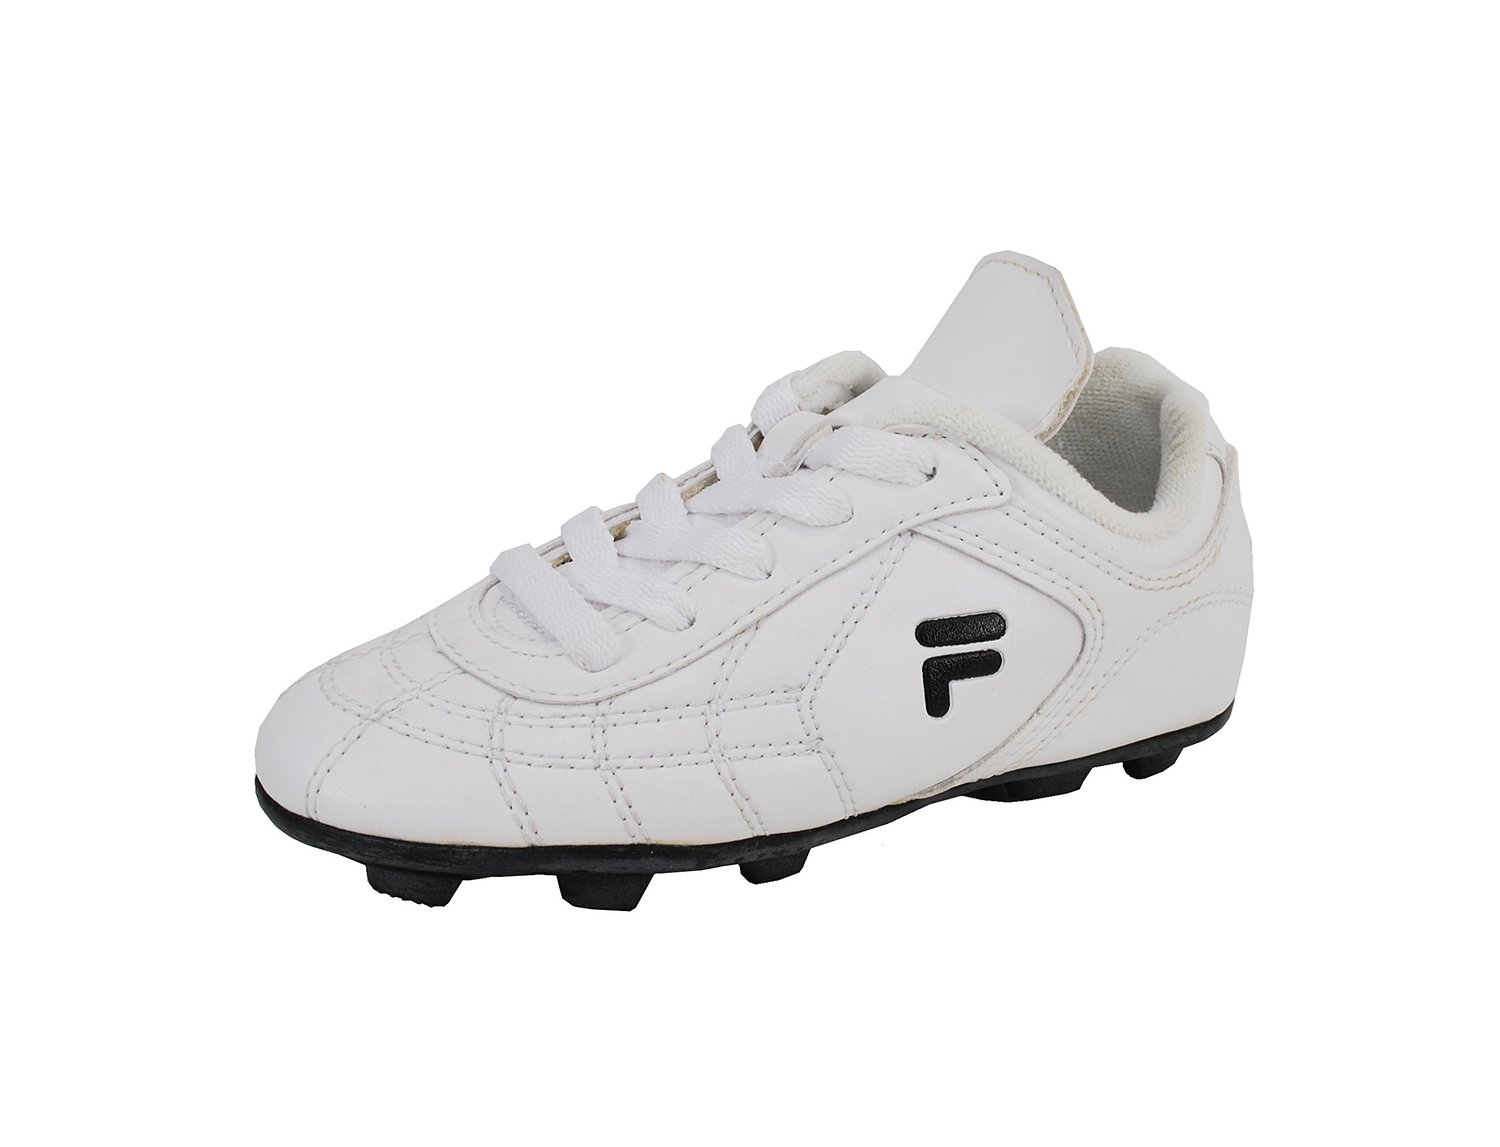 1378bf44c Get Quotations · Fila Boy s Calcio III Soccer Cleats White Black Athletic  Shoes FW03693